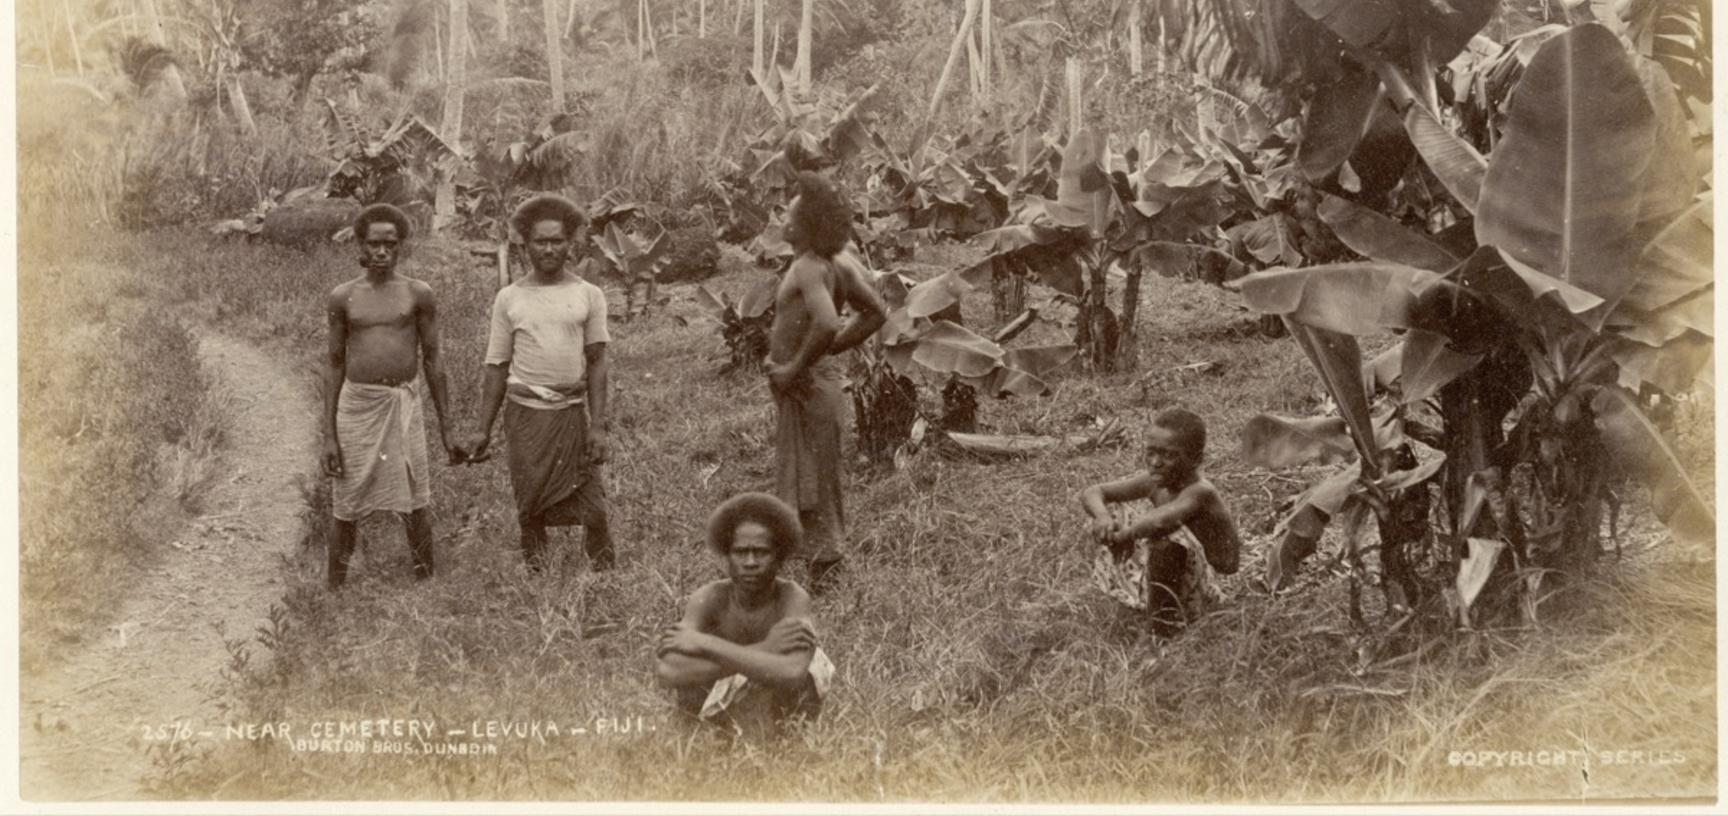 Fijian men near the cemetery at Levuka. Photograph by Alfred Burton for the Burton Brothers studio (Dunedin). Levuka, Ovalau, Fiji. 14 July 1884. (Copyright Pitt Rivers Museum, University of Oxford. Accession Number: 1998.238.10)